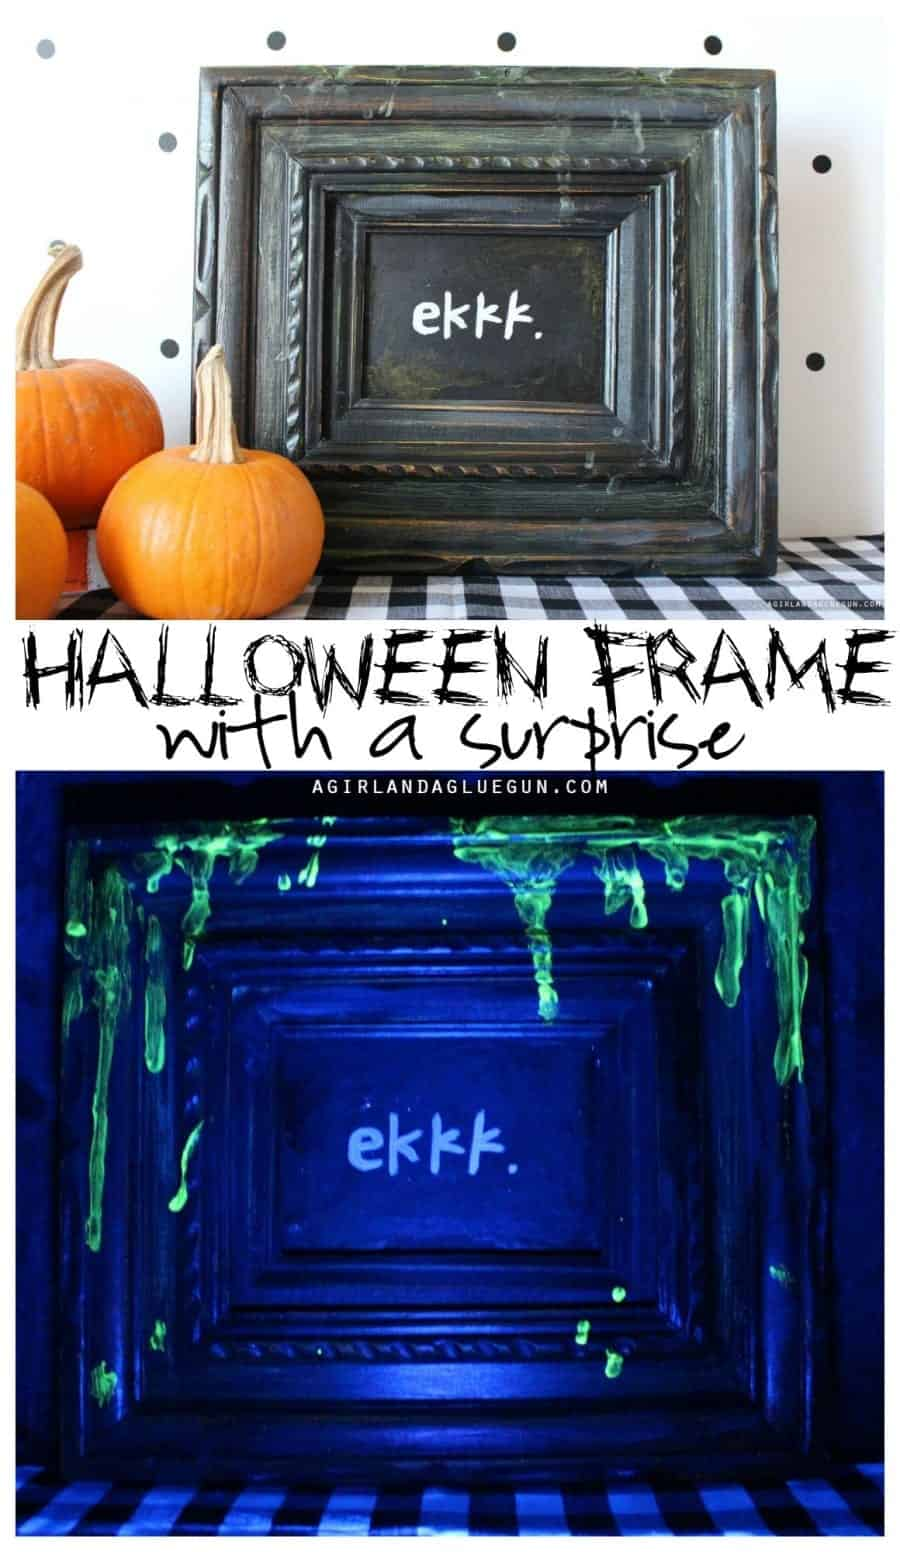 Halloween frame with a glow in the dark surprise